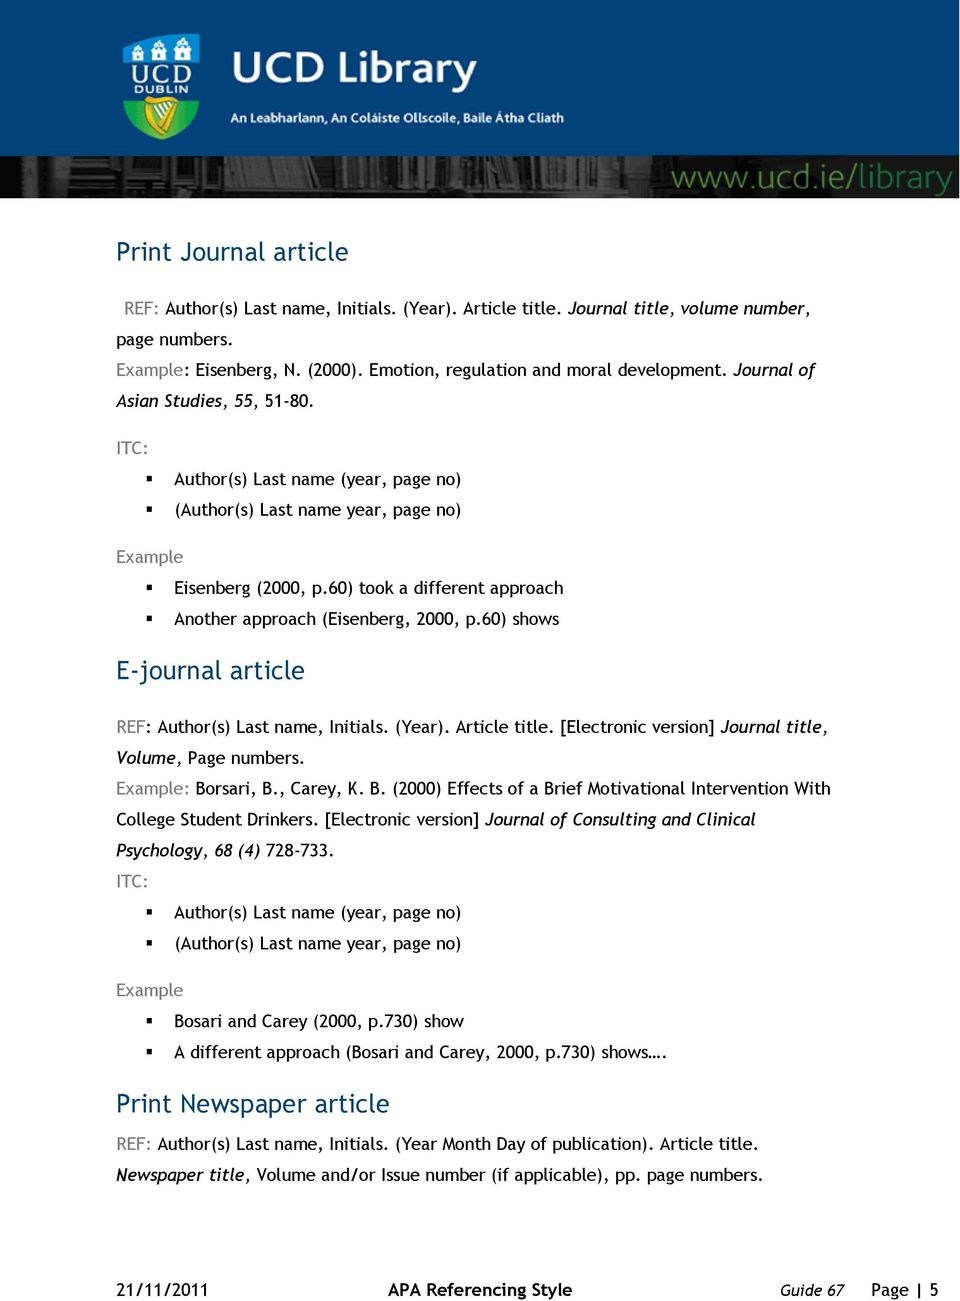 60) shows E-journal article REF: Author(s) Last name, Initials. (Year). Article title. [Electronic version] Journal title, Volume, Page numbers. : Bo